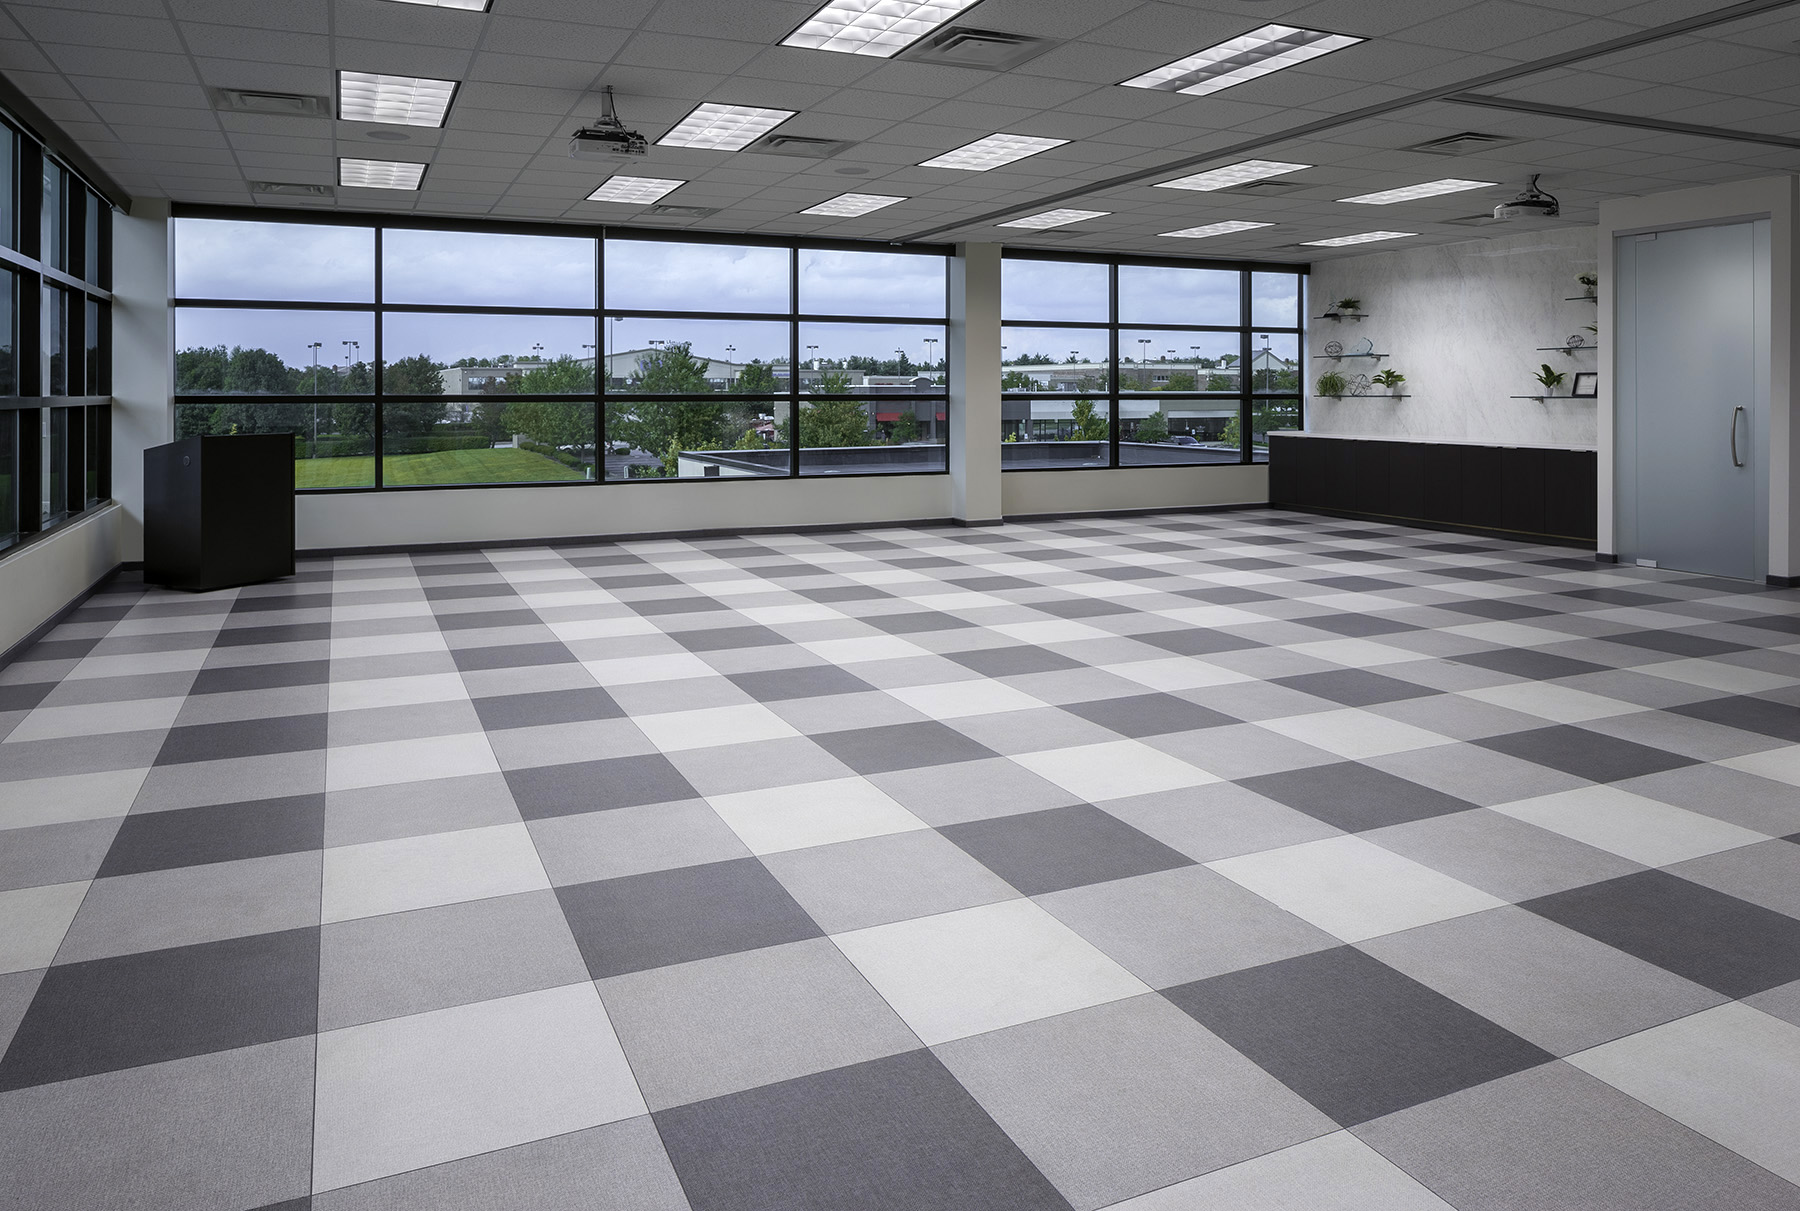 training room with patterned tile installation